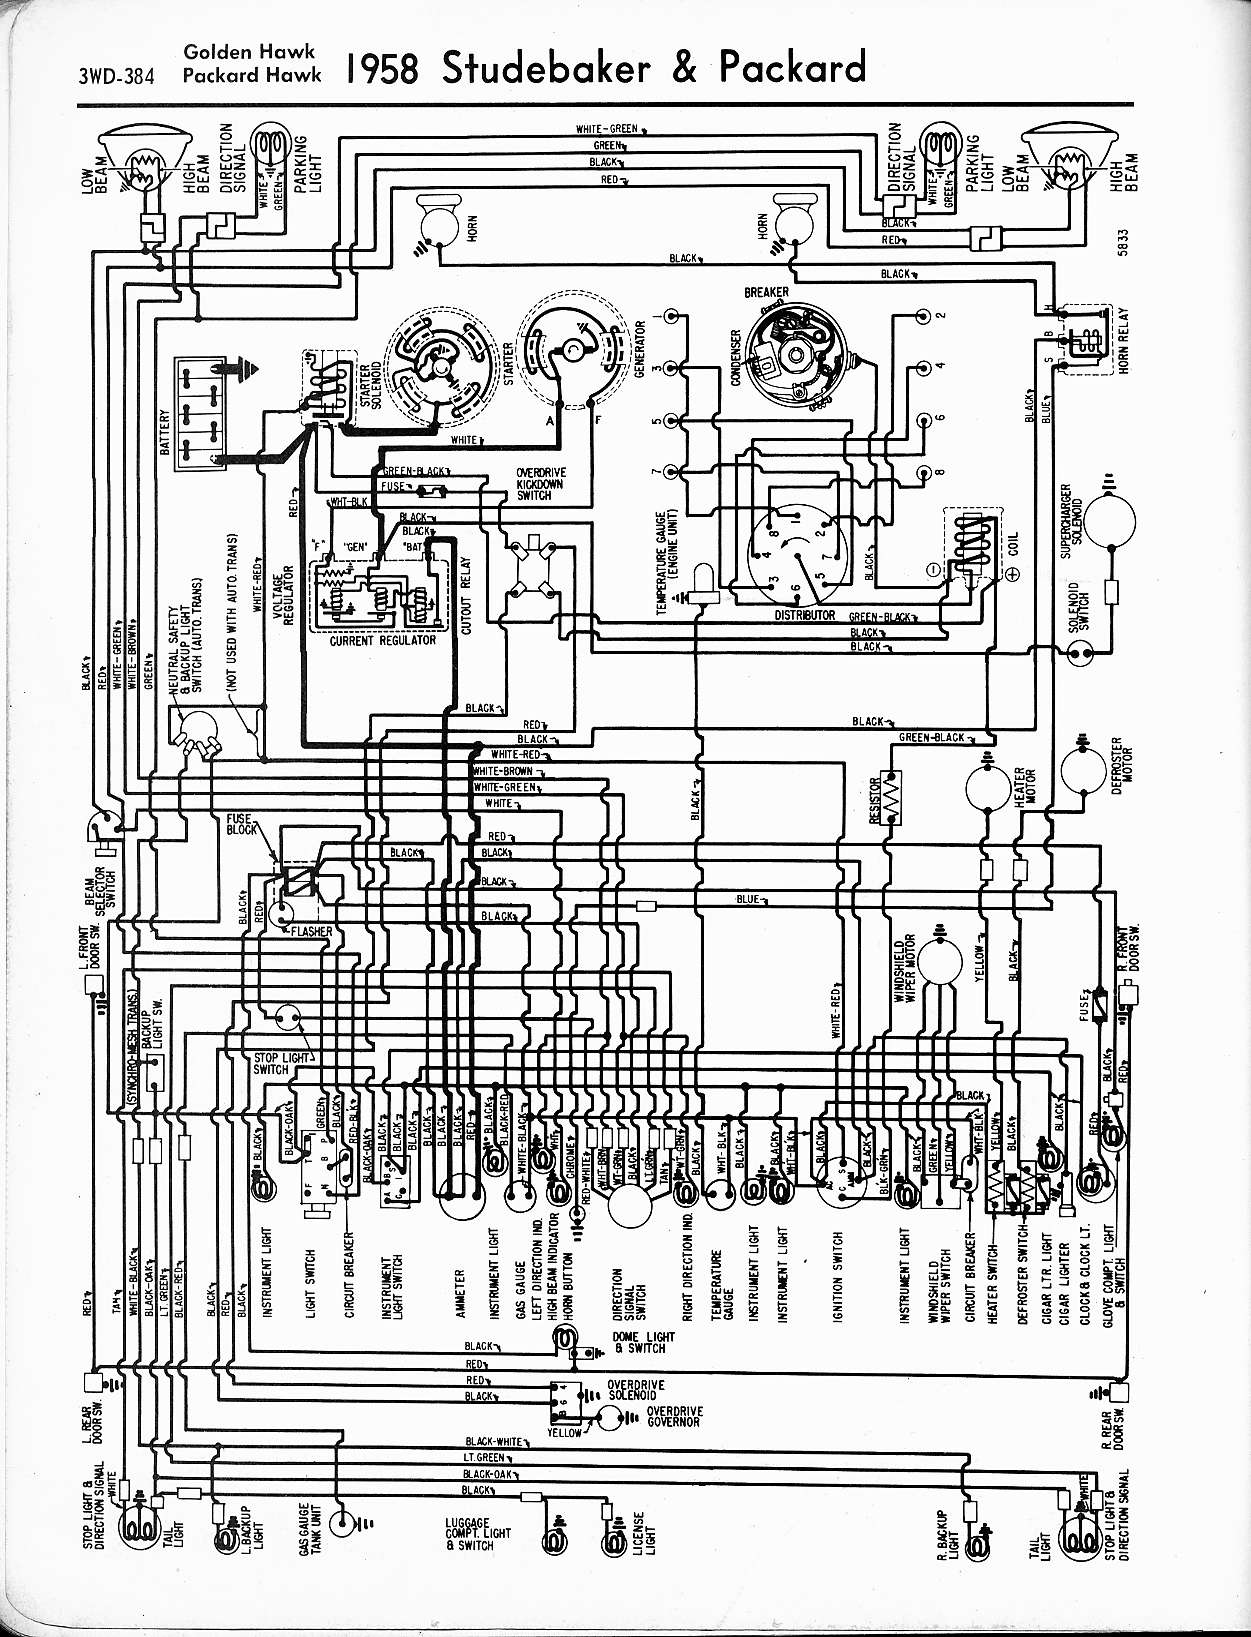 studebaker wiring diagrams the old car manual project rh oldcarmanualproject com 1950 studebaker champion wiring diagram Generator Wiring Diagram